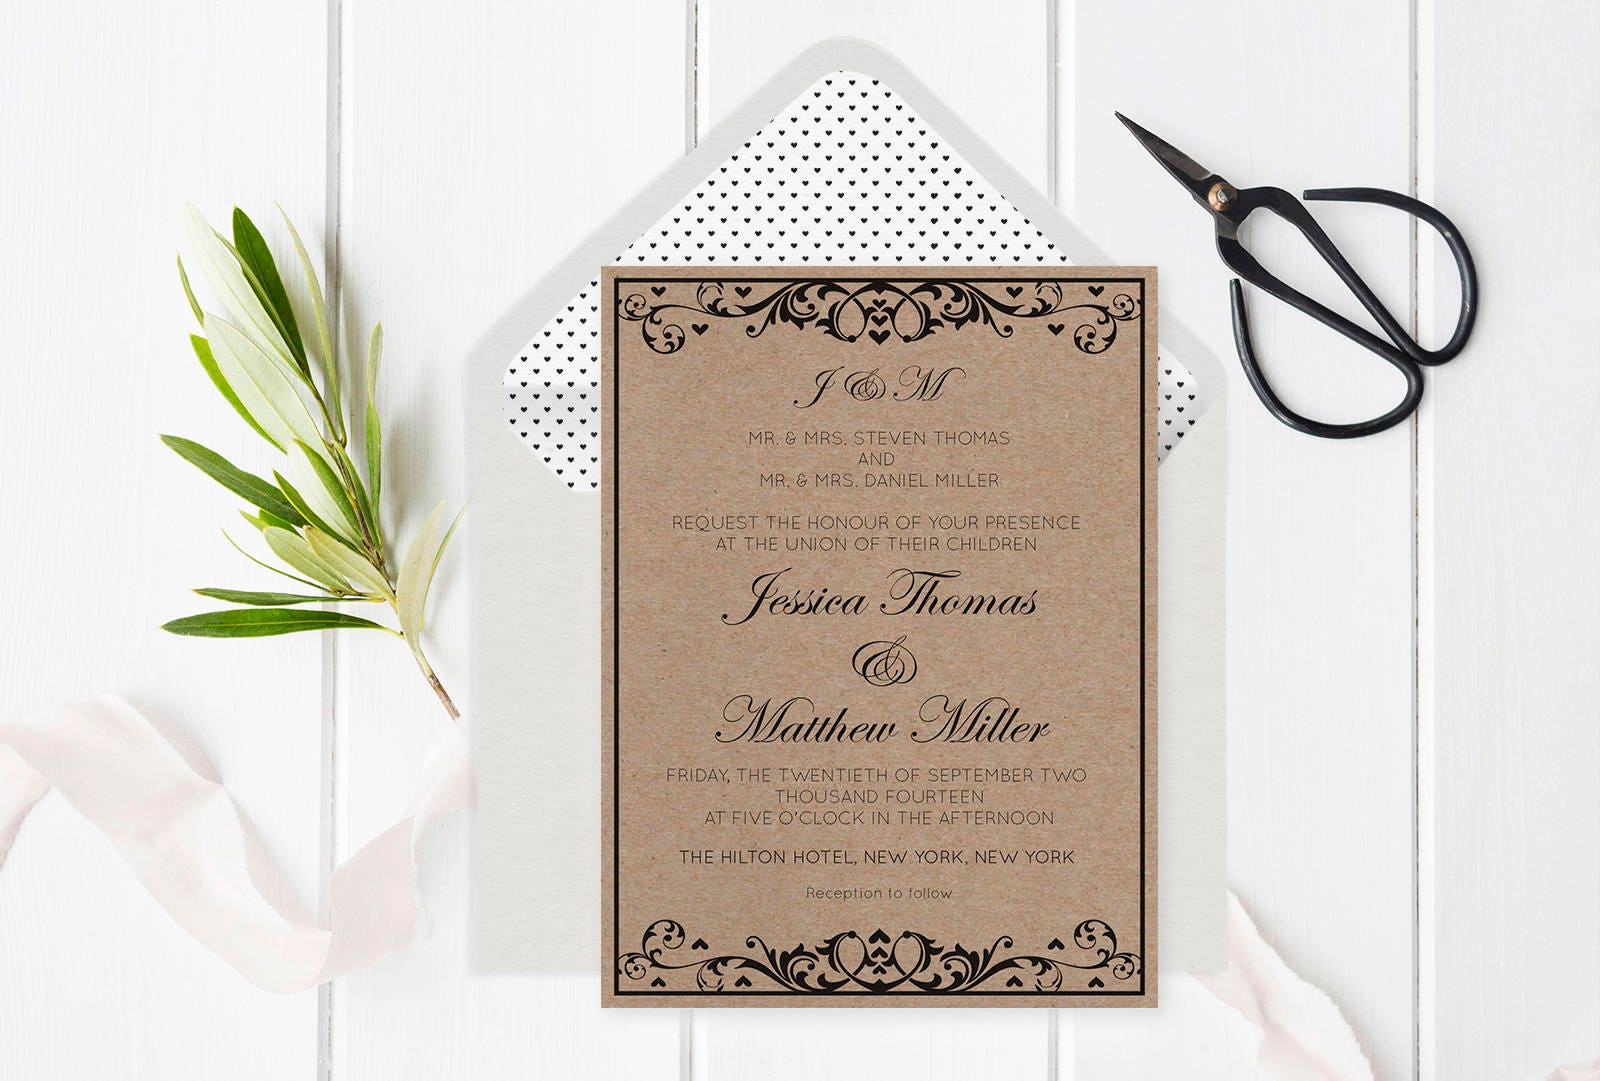 Flourish Wedding Invitations: Rustic Flourish Wedding Invitation Template Monogram